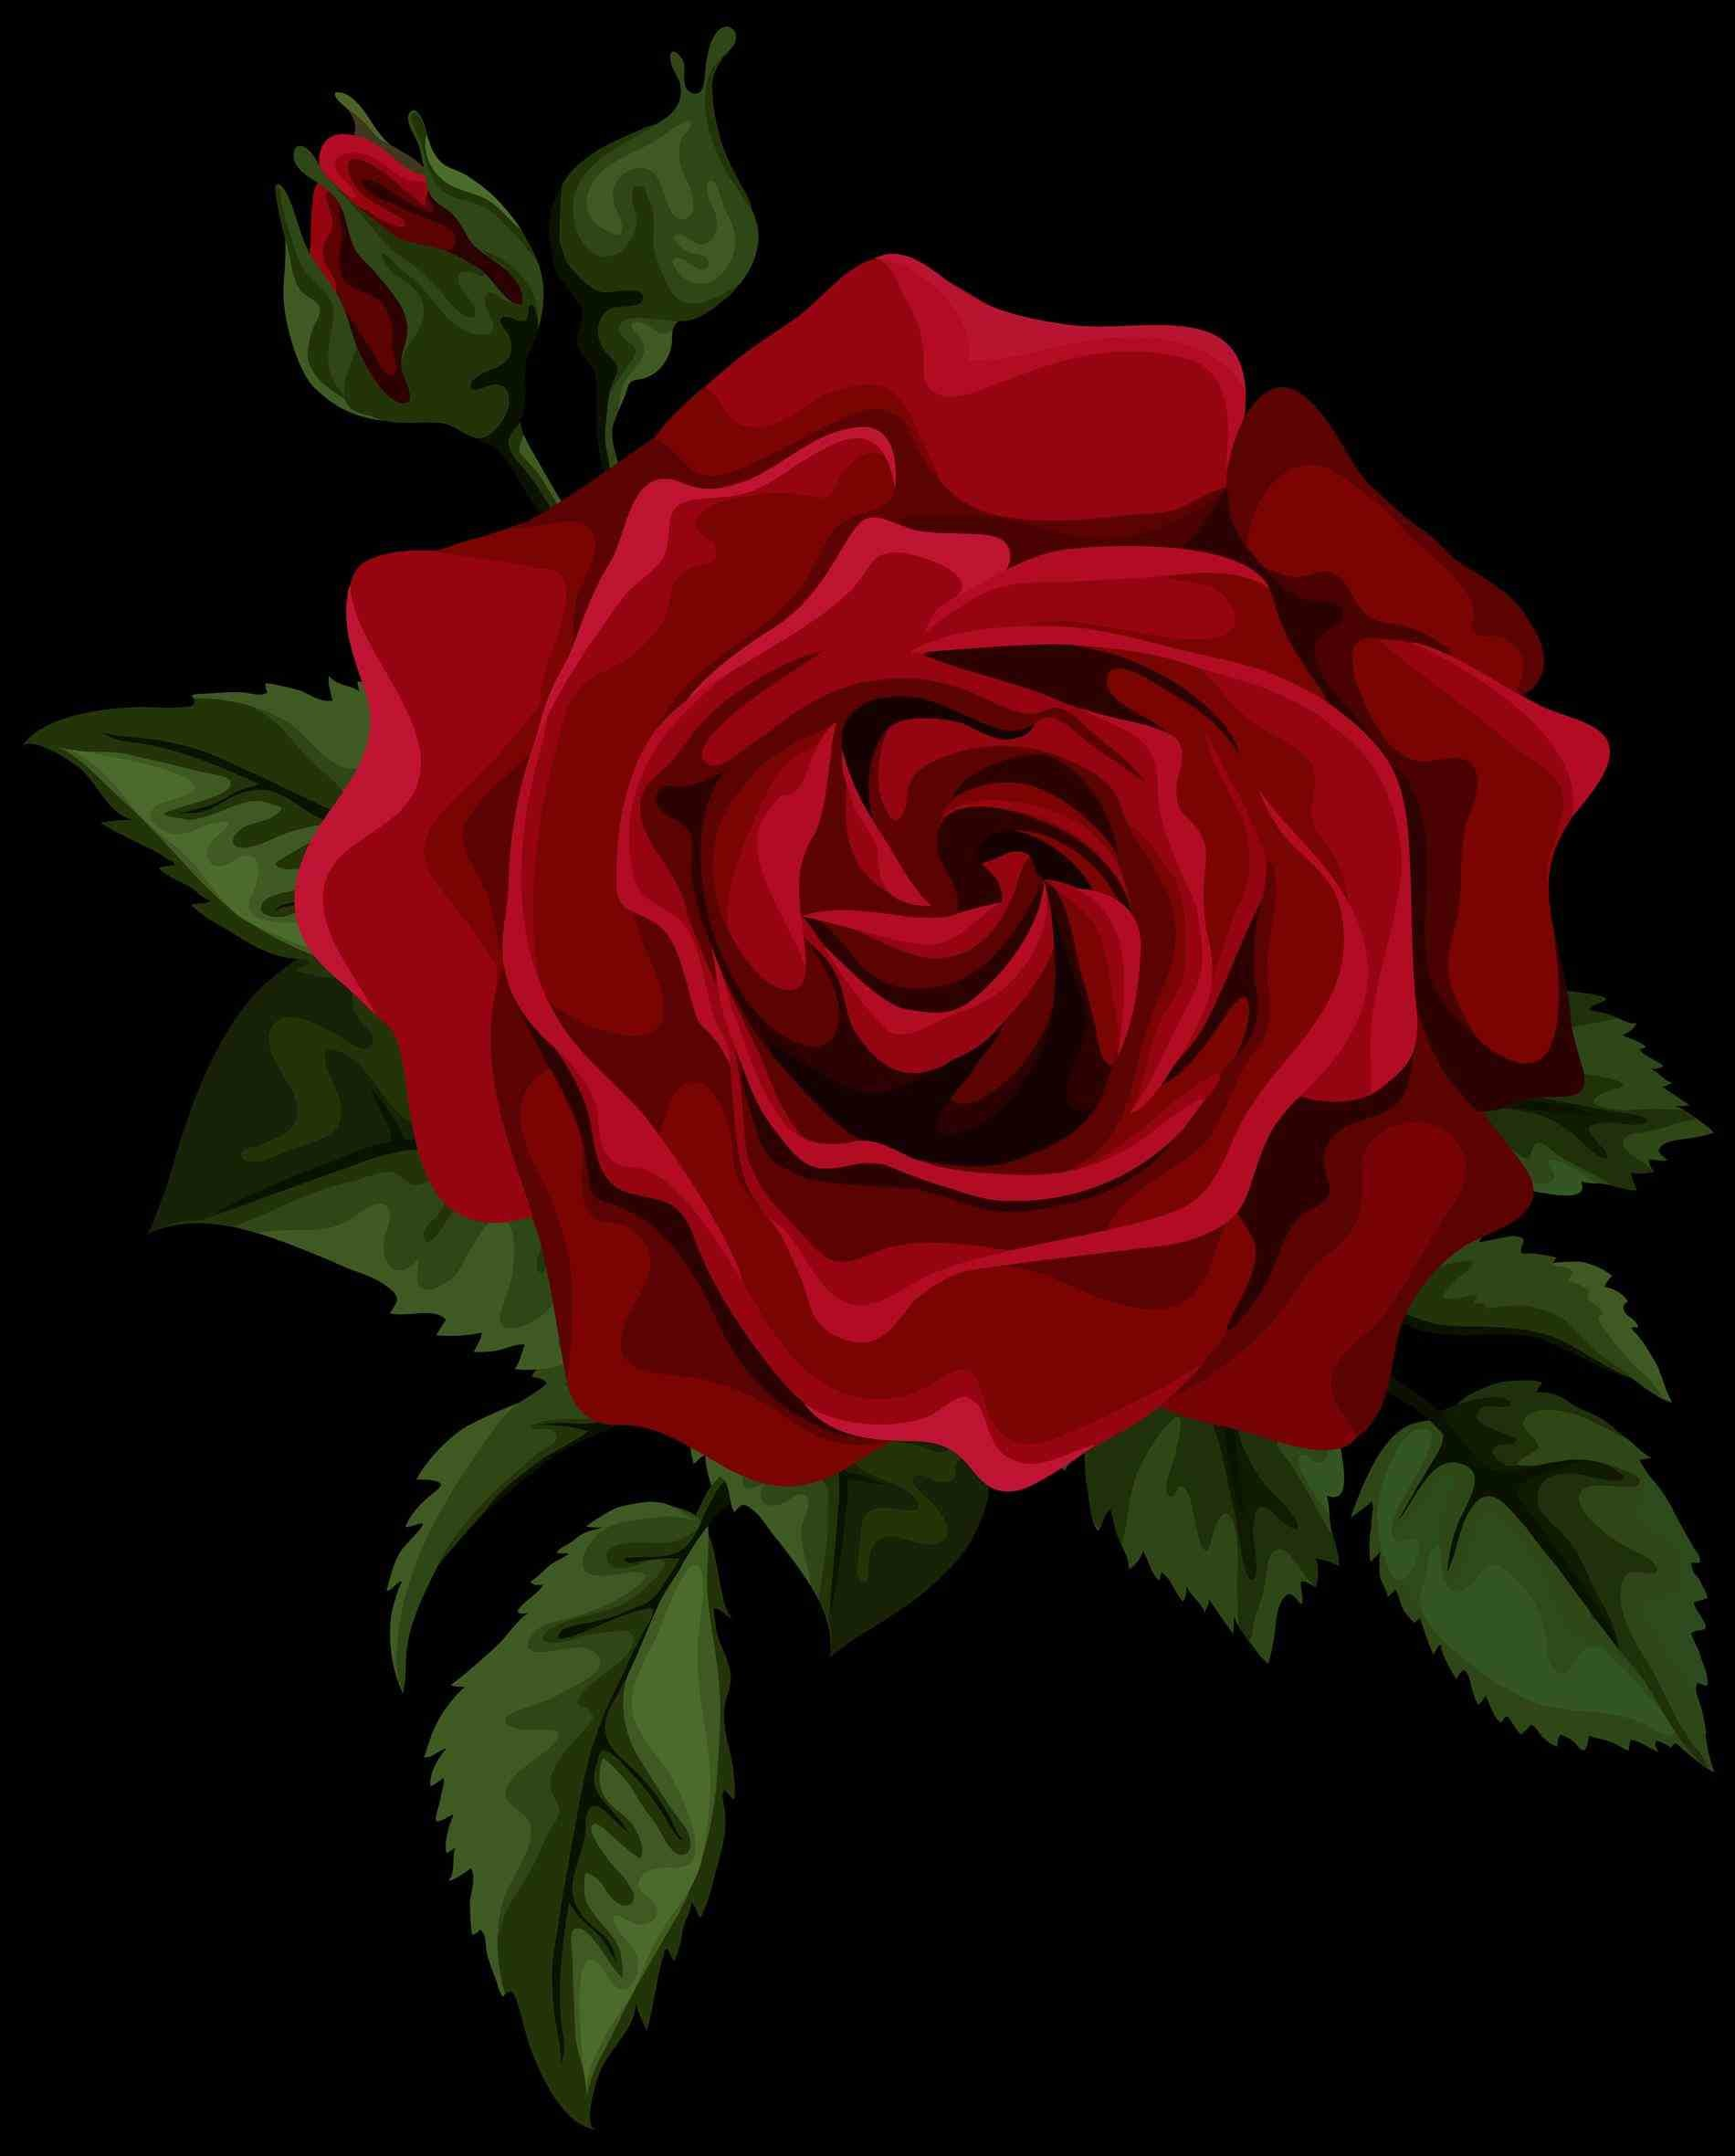 Red Rose Background Tumblr Posted By Zoey Simpson